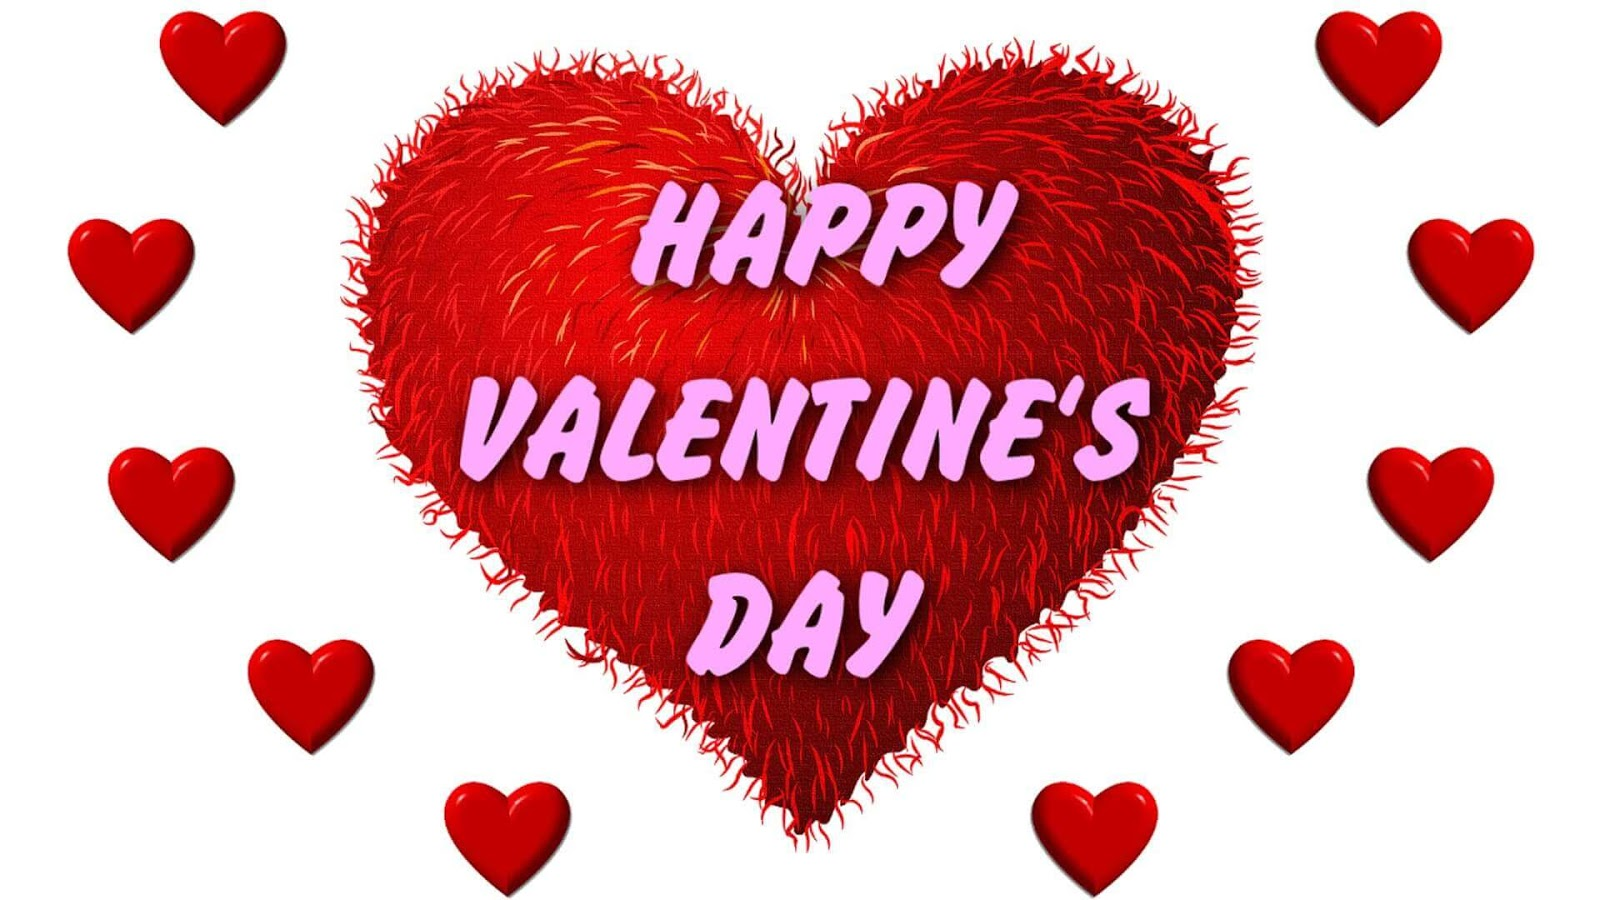 valentine's day ideas for couples